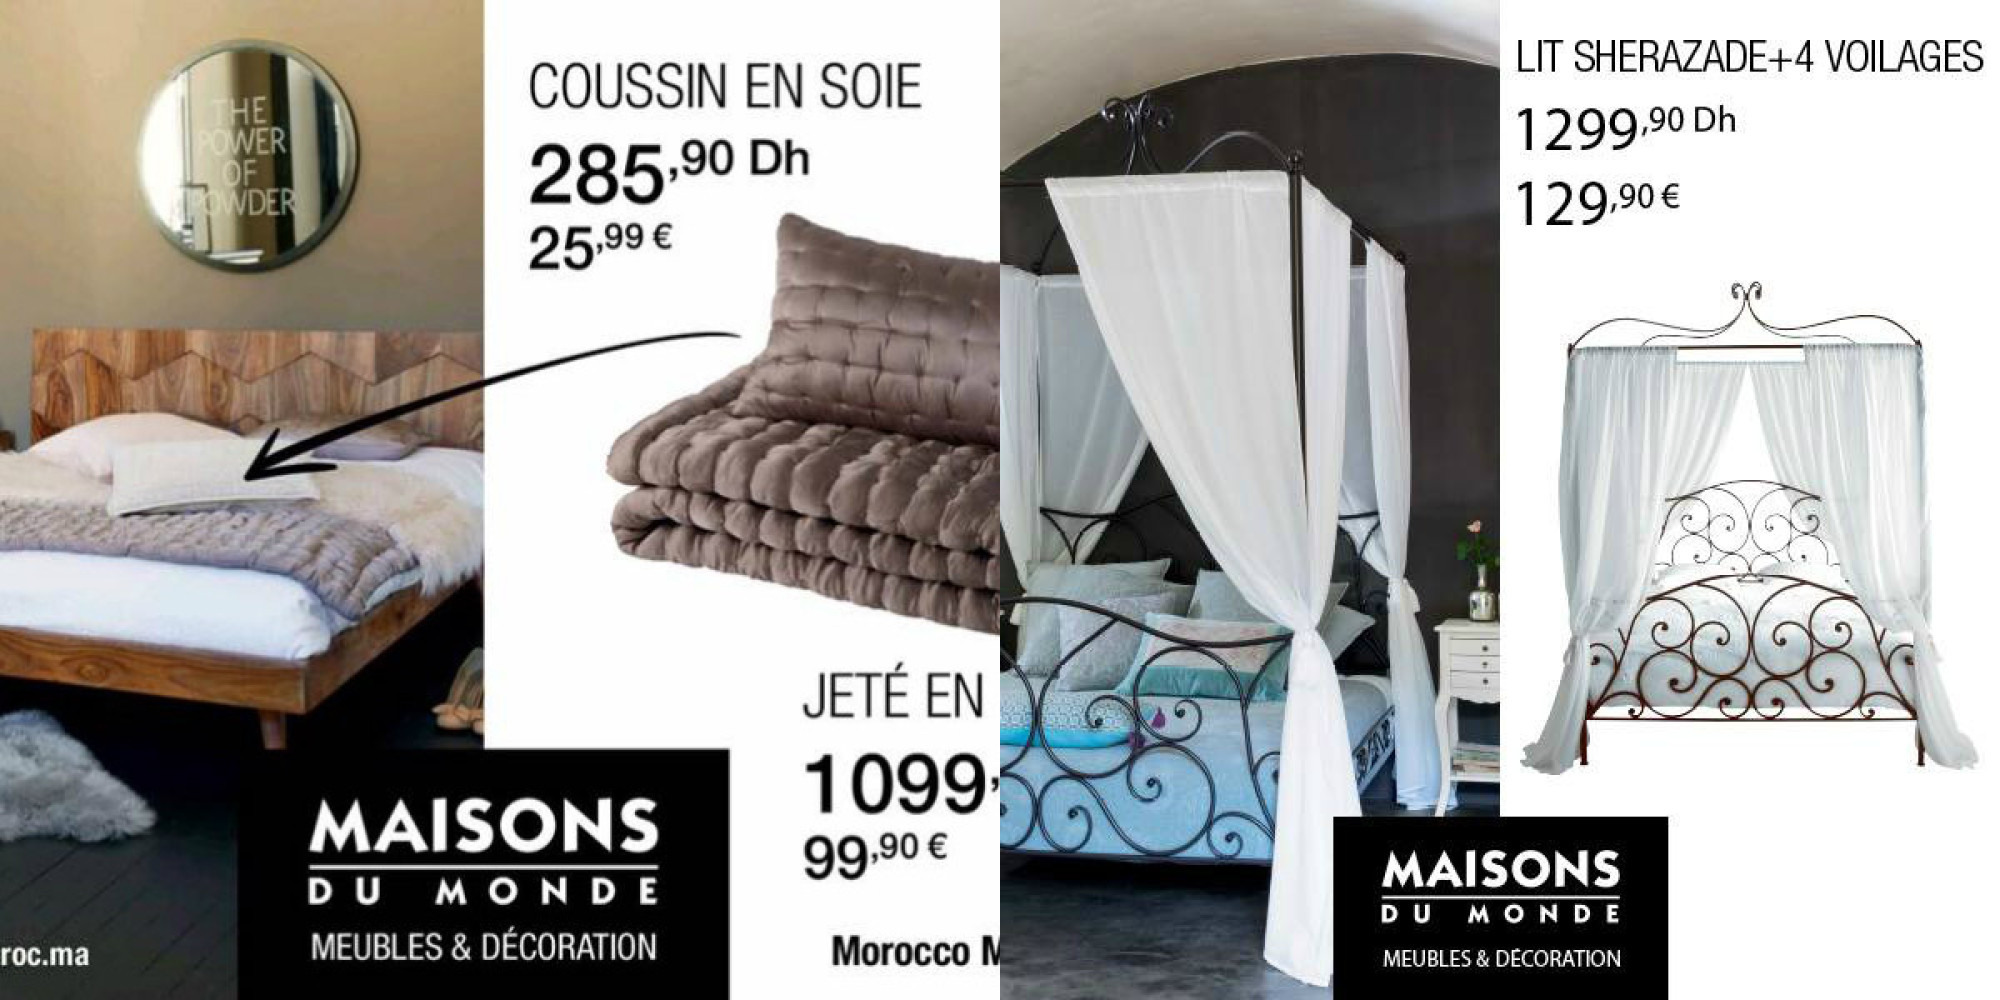 magasin style maison du monde decoration deco maison mer bc photo salon blanc maisons du monde. Black Bedroom Furniture Sets. Home Design Ideas